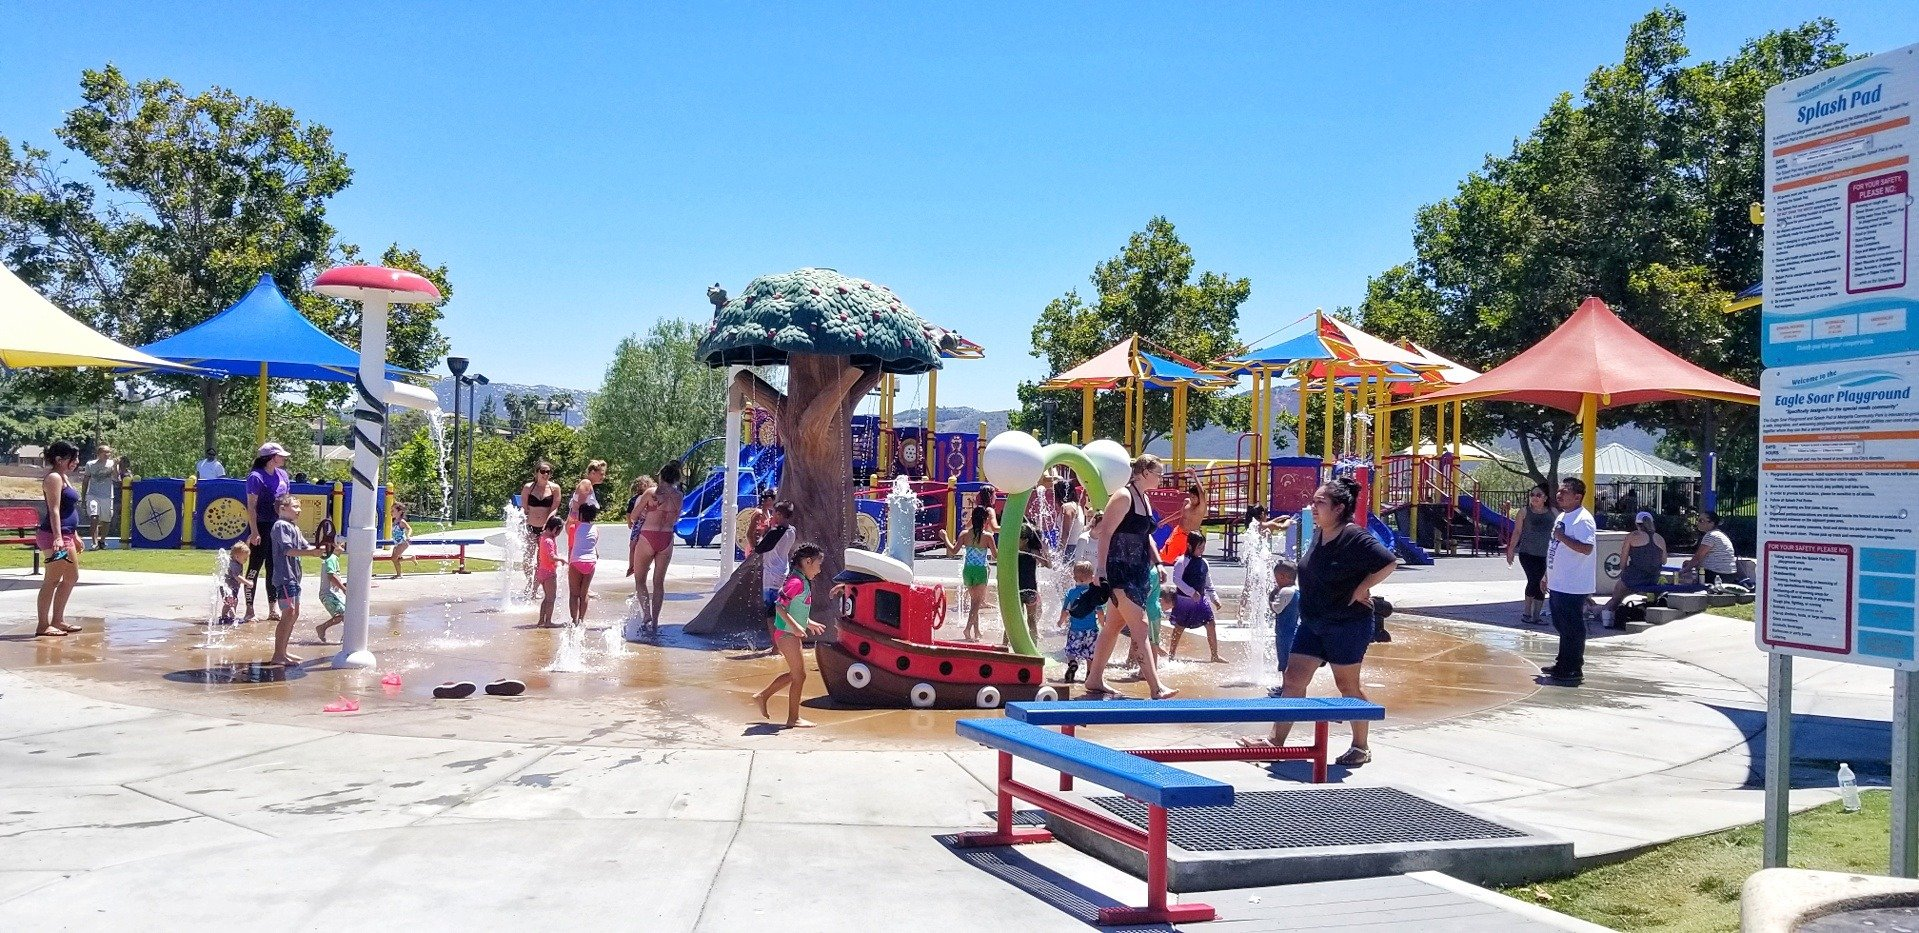 picture of the splash pad in temecula, ca